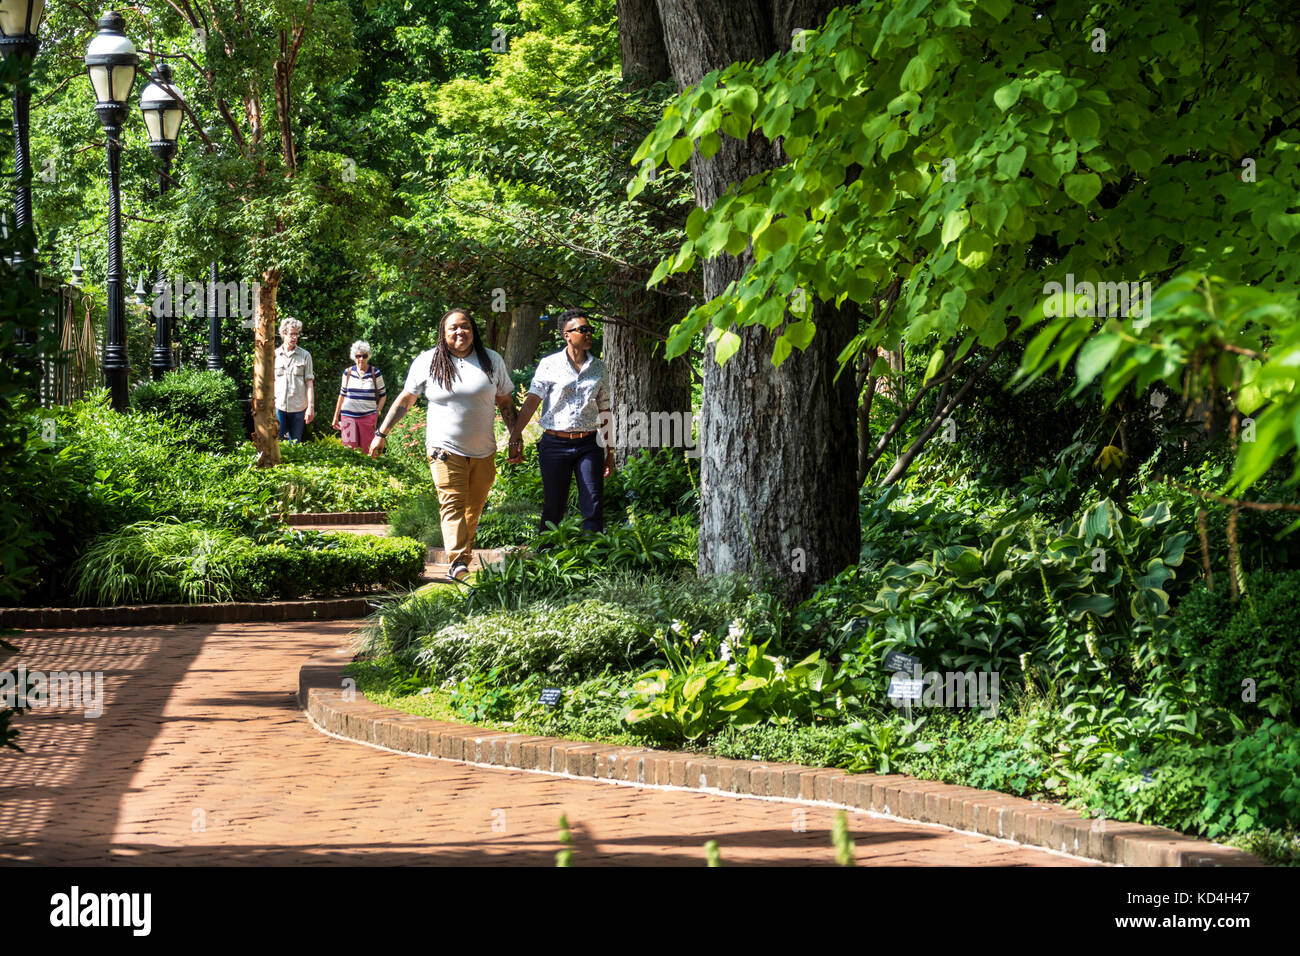 Washington DC District of Columbia National Mall Mary Livingston Ripley Garden horticulture pathway Black man woman - Stock Image